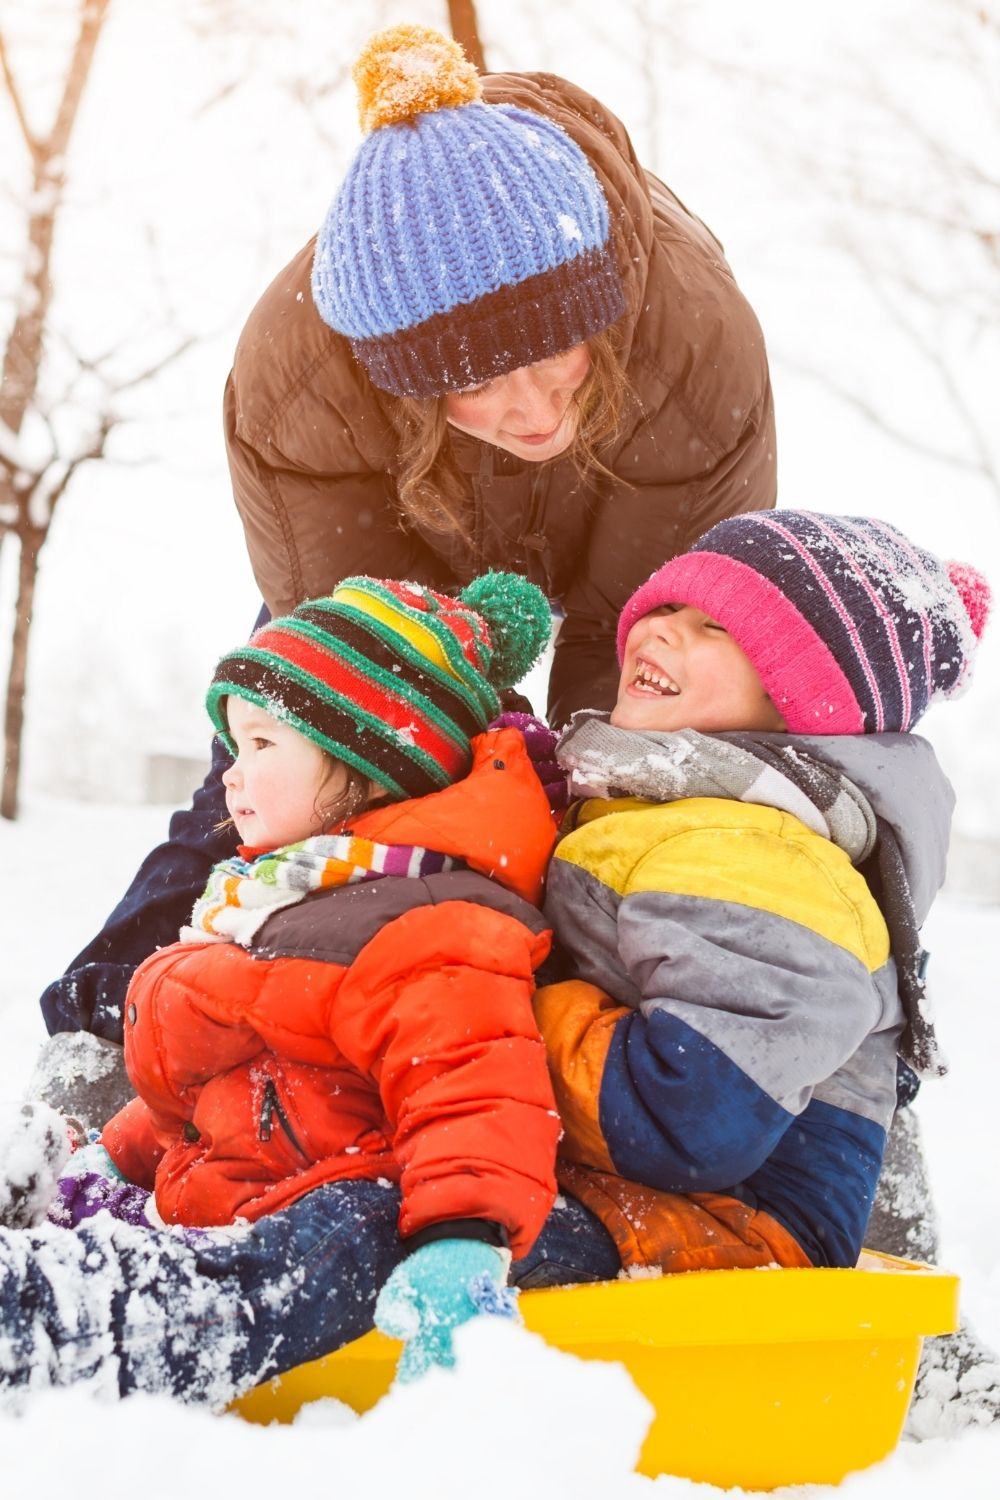 10 winter safety tips for your family - in general